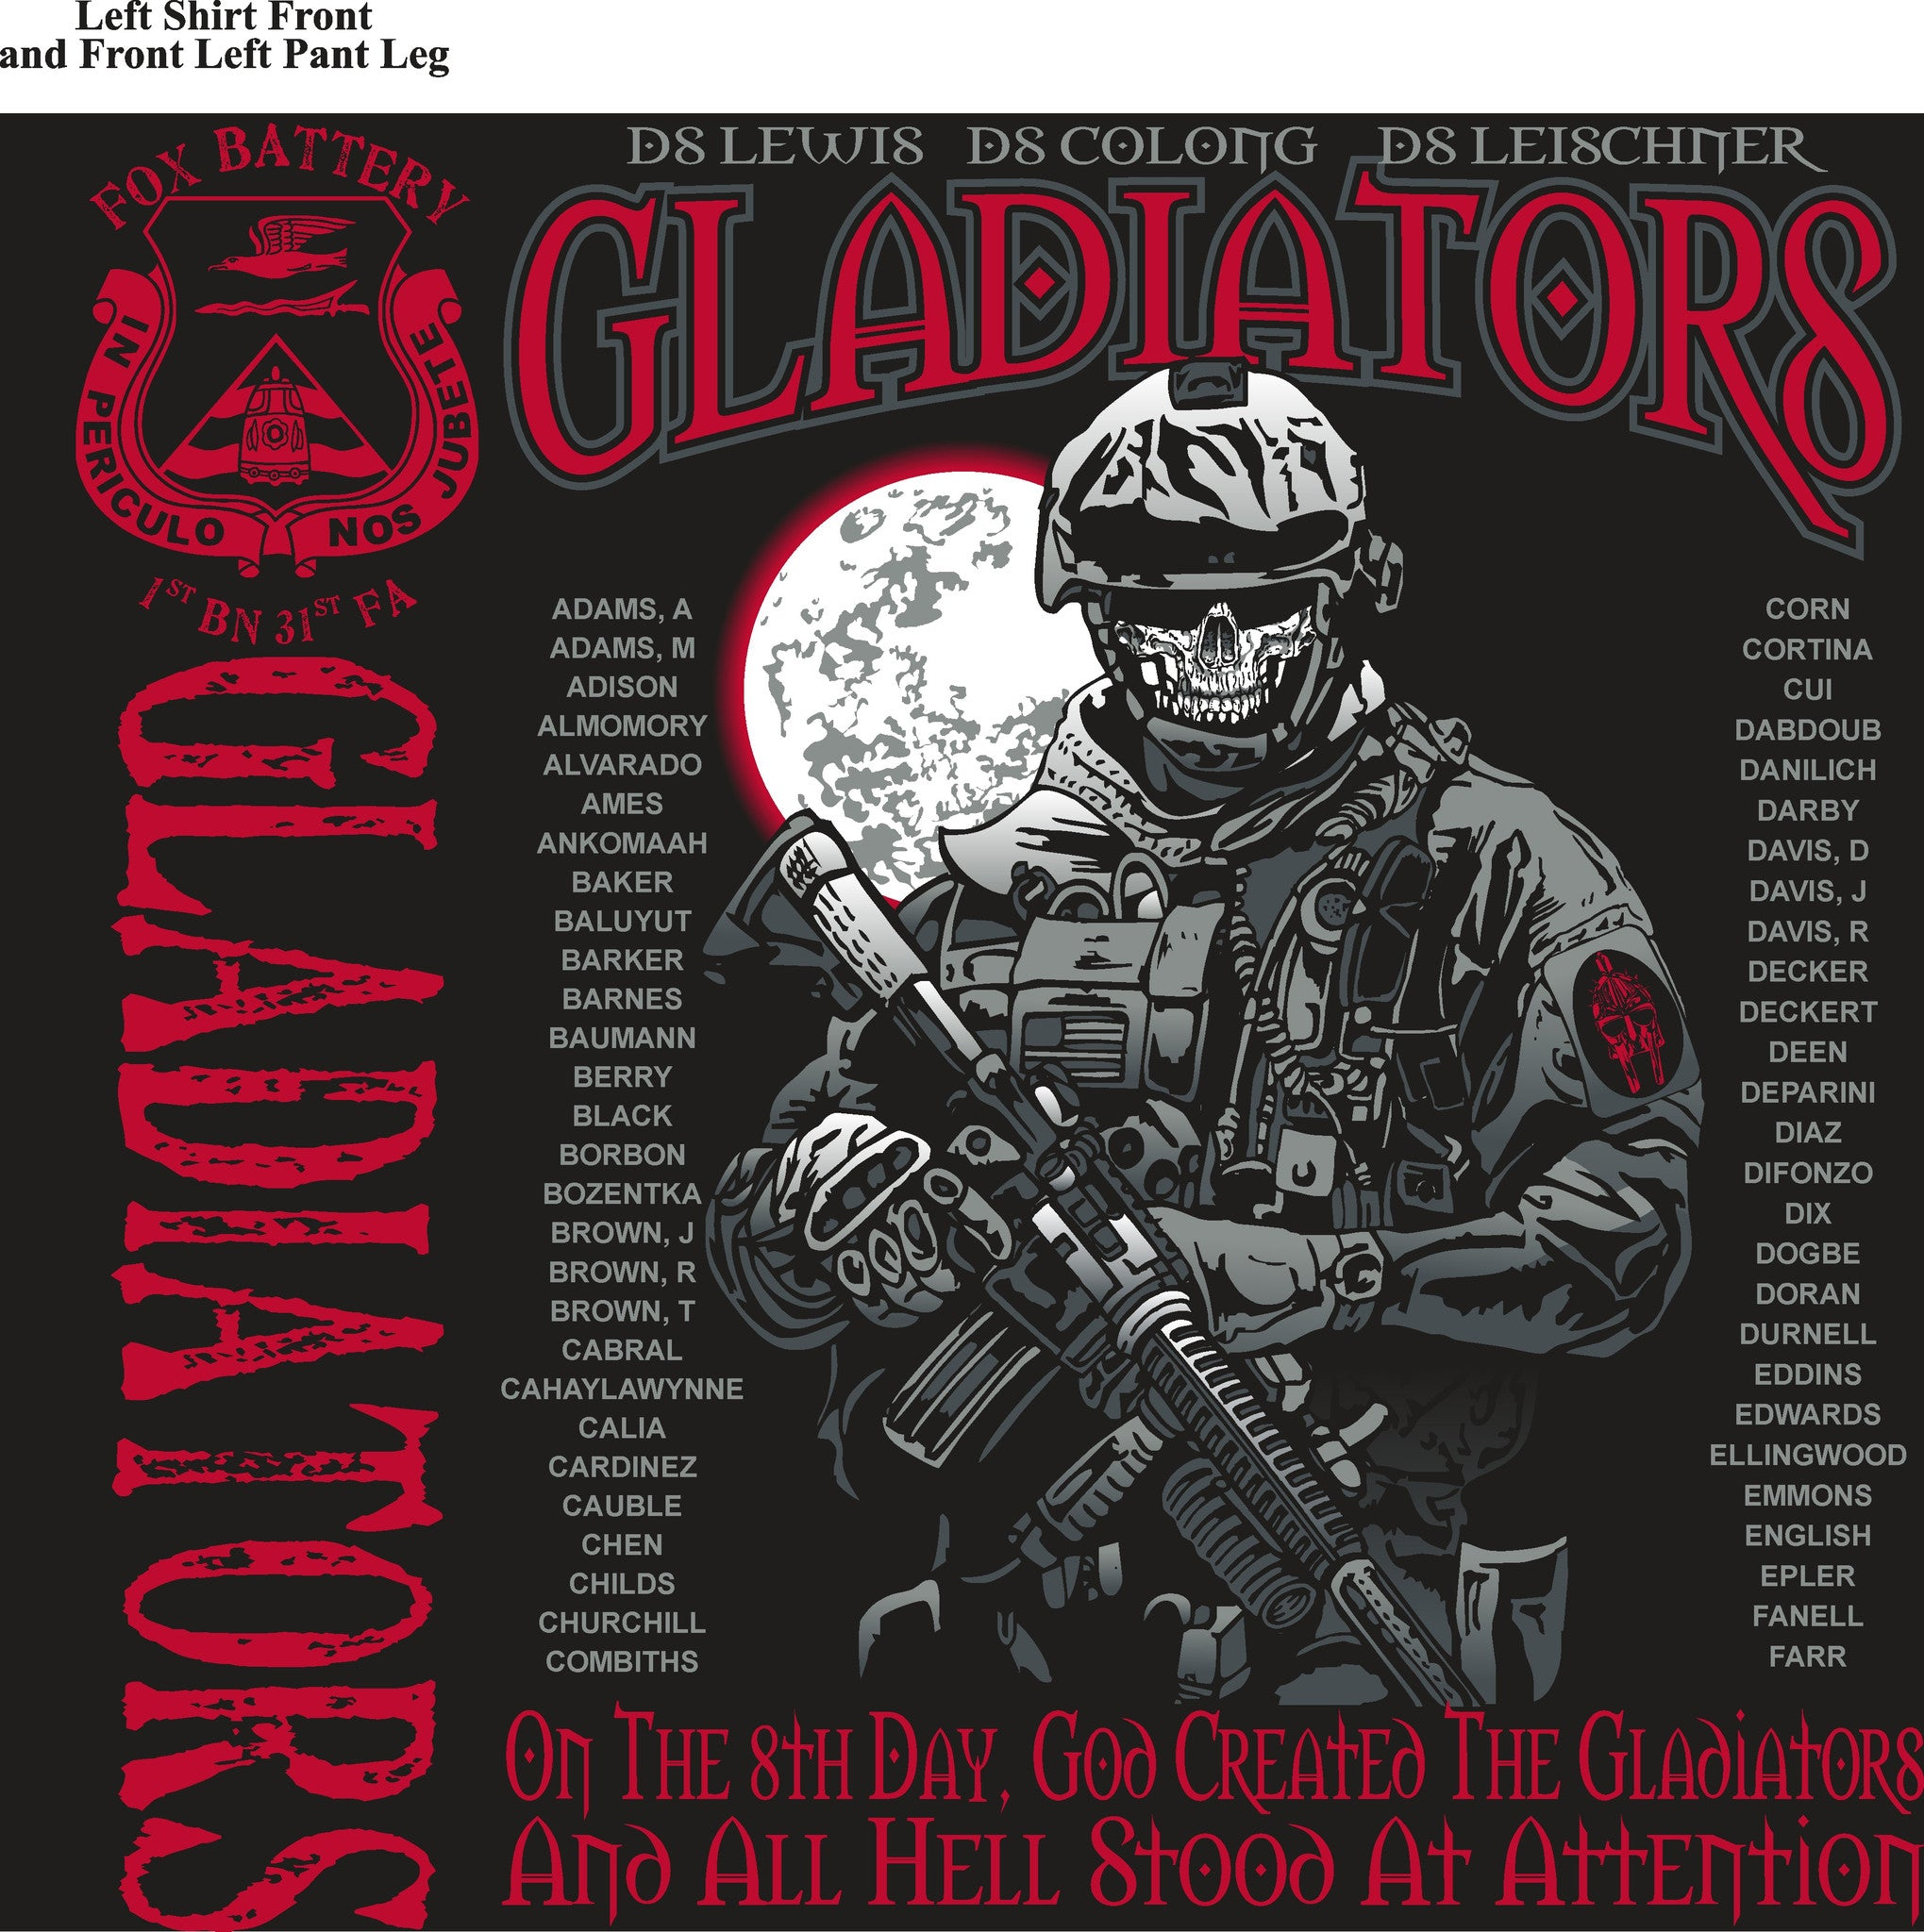 Platoon Shirts FOX 1st 31st GLADIATORS JUNE 2015